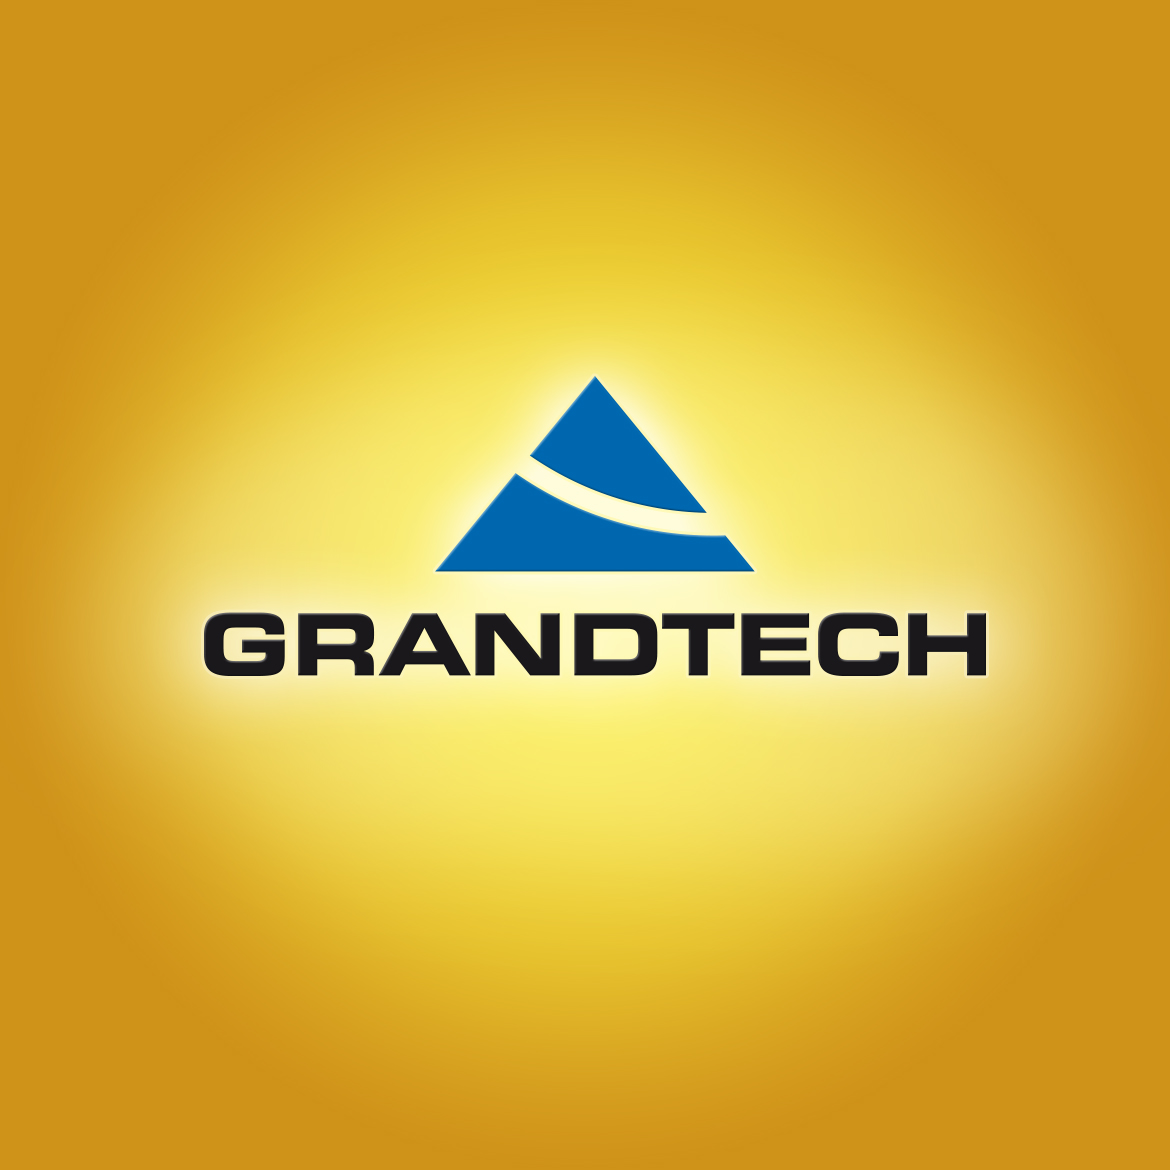 Referenz Grandtech Corporate Design Logo Signet Claim